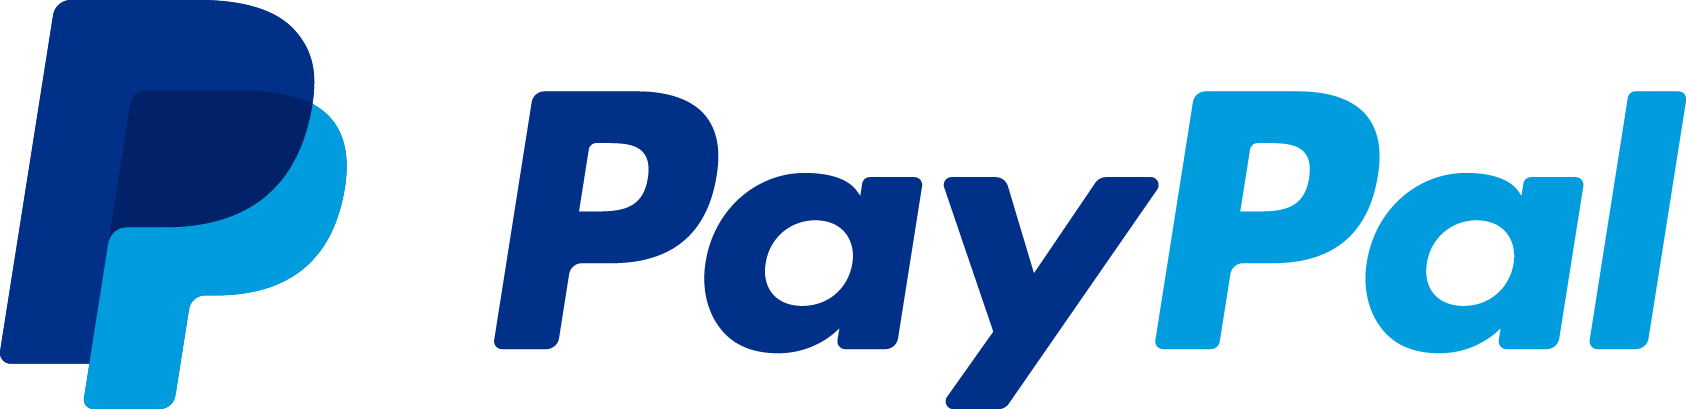 PayPal_trans